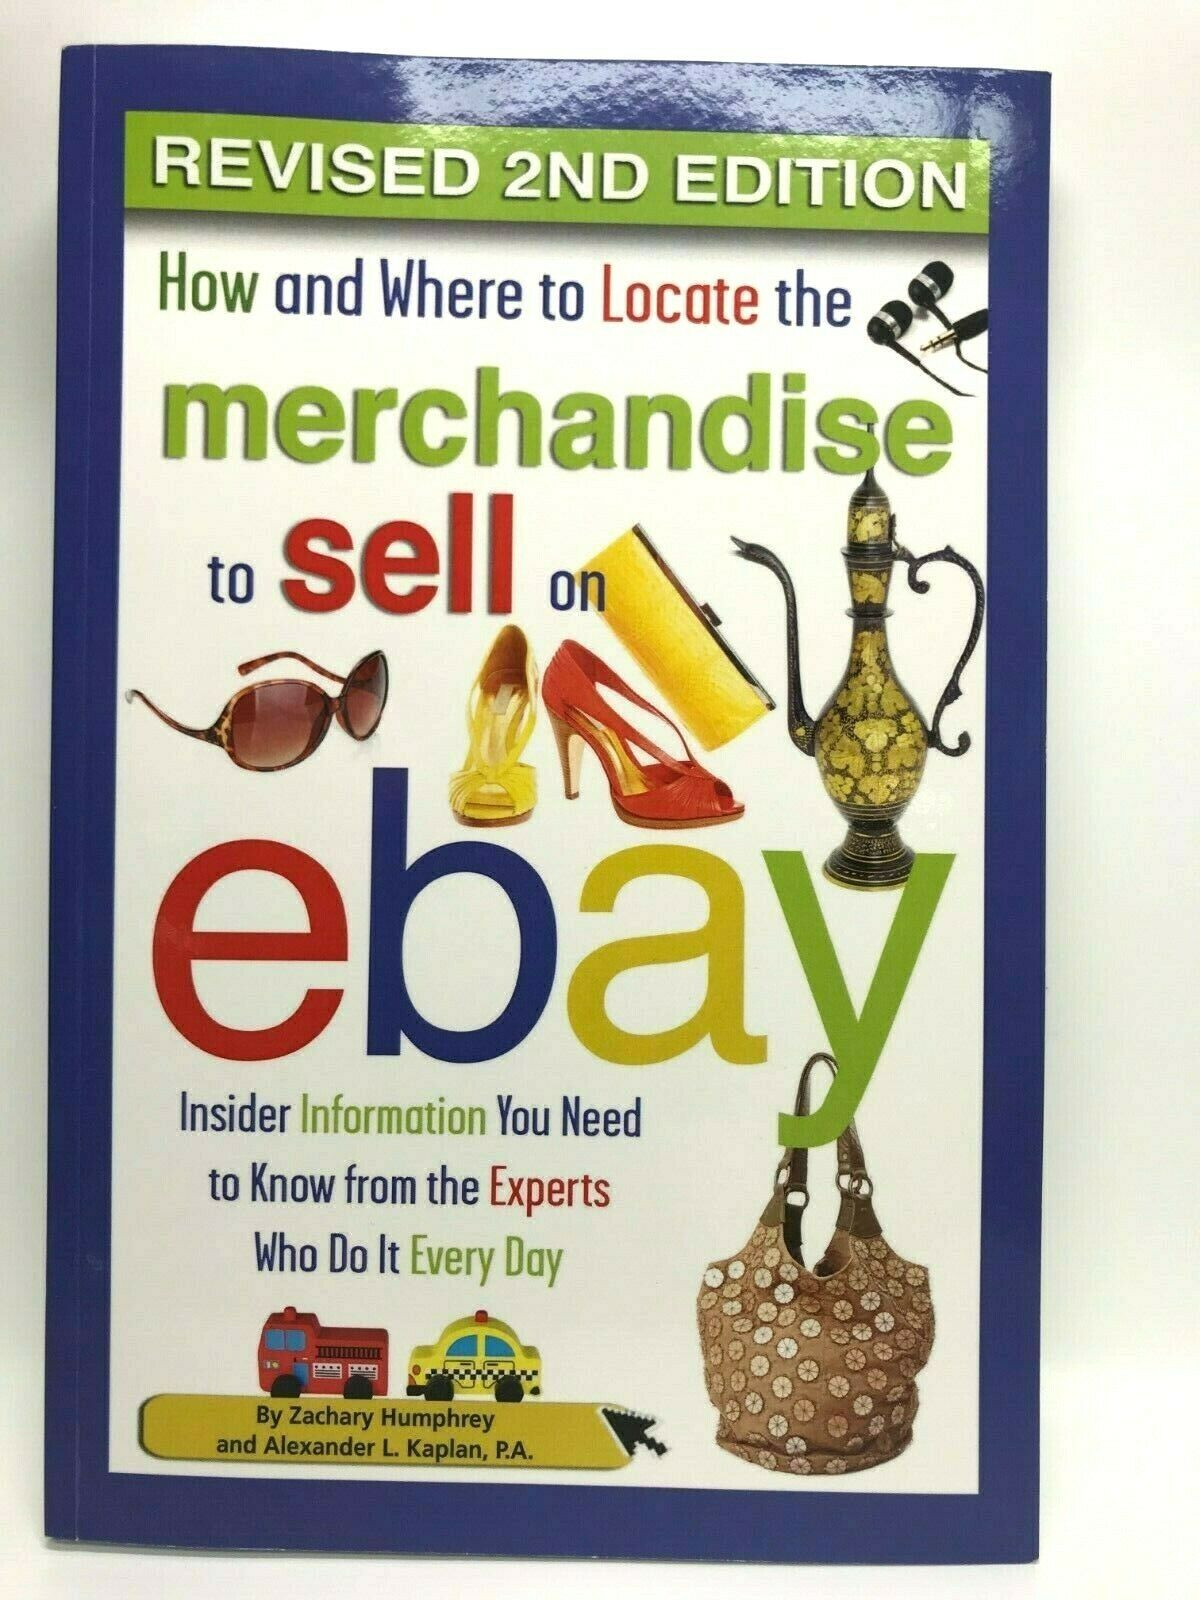 How And Where To Locate The Merchandise To Sell On Ebay Insider Information You Need To Know From The Experts Who Do It Every Day Revised 2nd Edition By Dan W